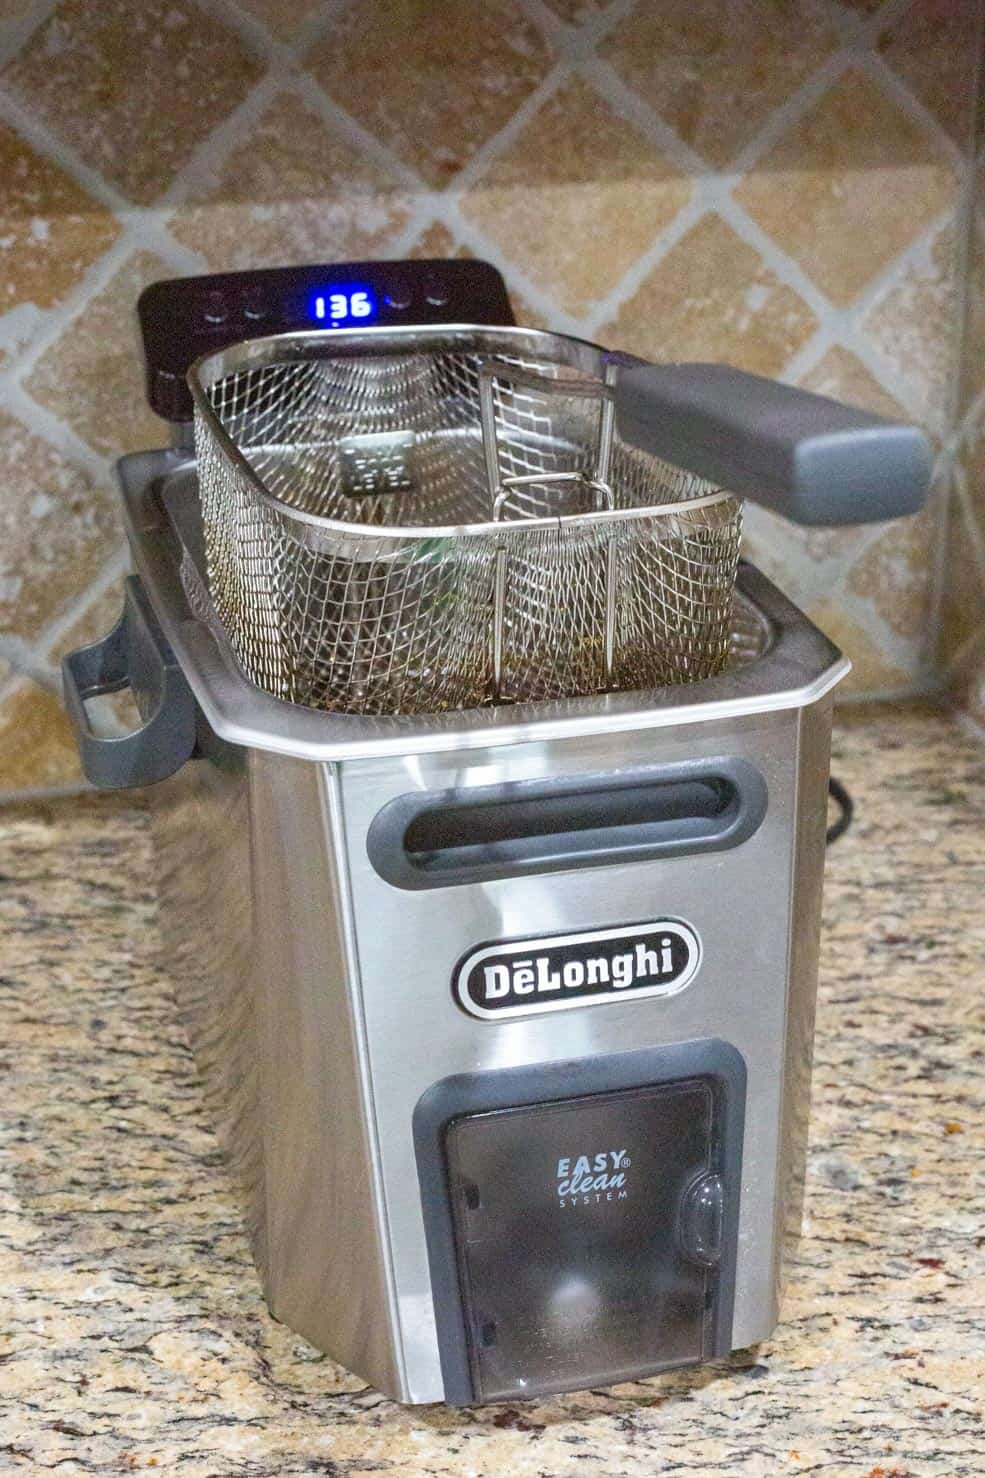 A DeLonghi Fryer, on my countertop, being prepped to fry. (Turned on)